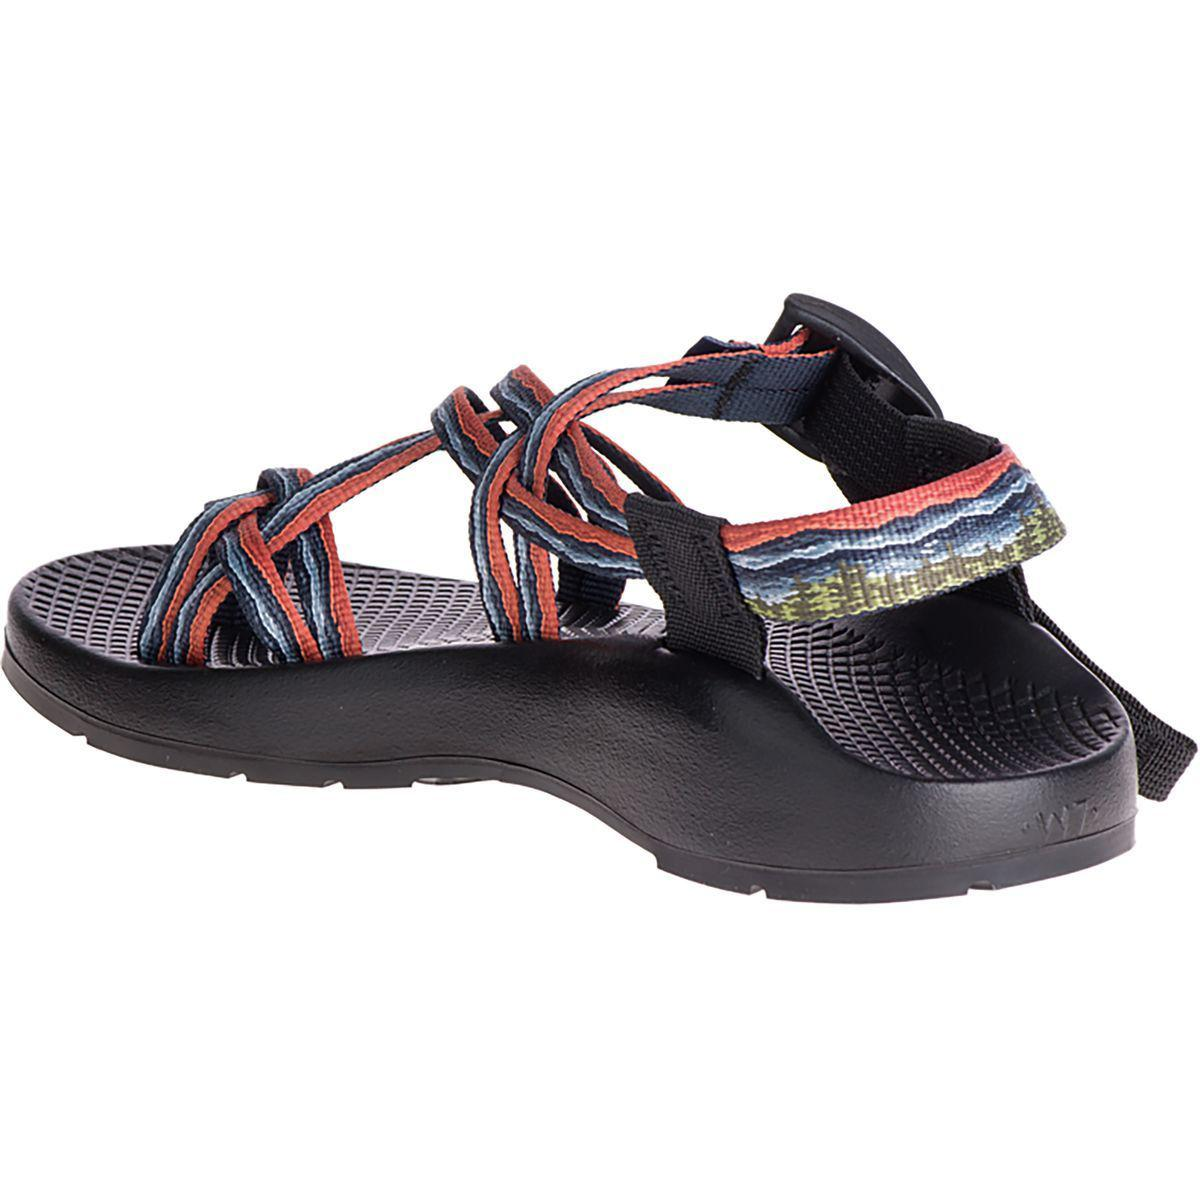 52cbbf94cf99 Lyst - Chaco National Park Zx 2 Colorado Sandal in Blue